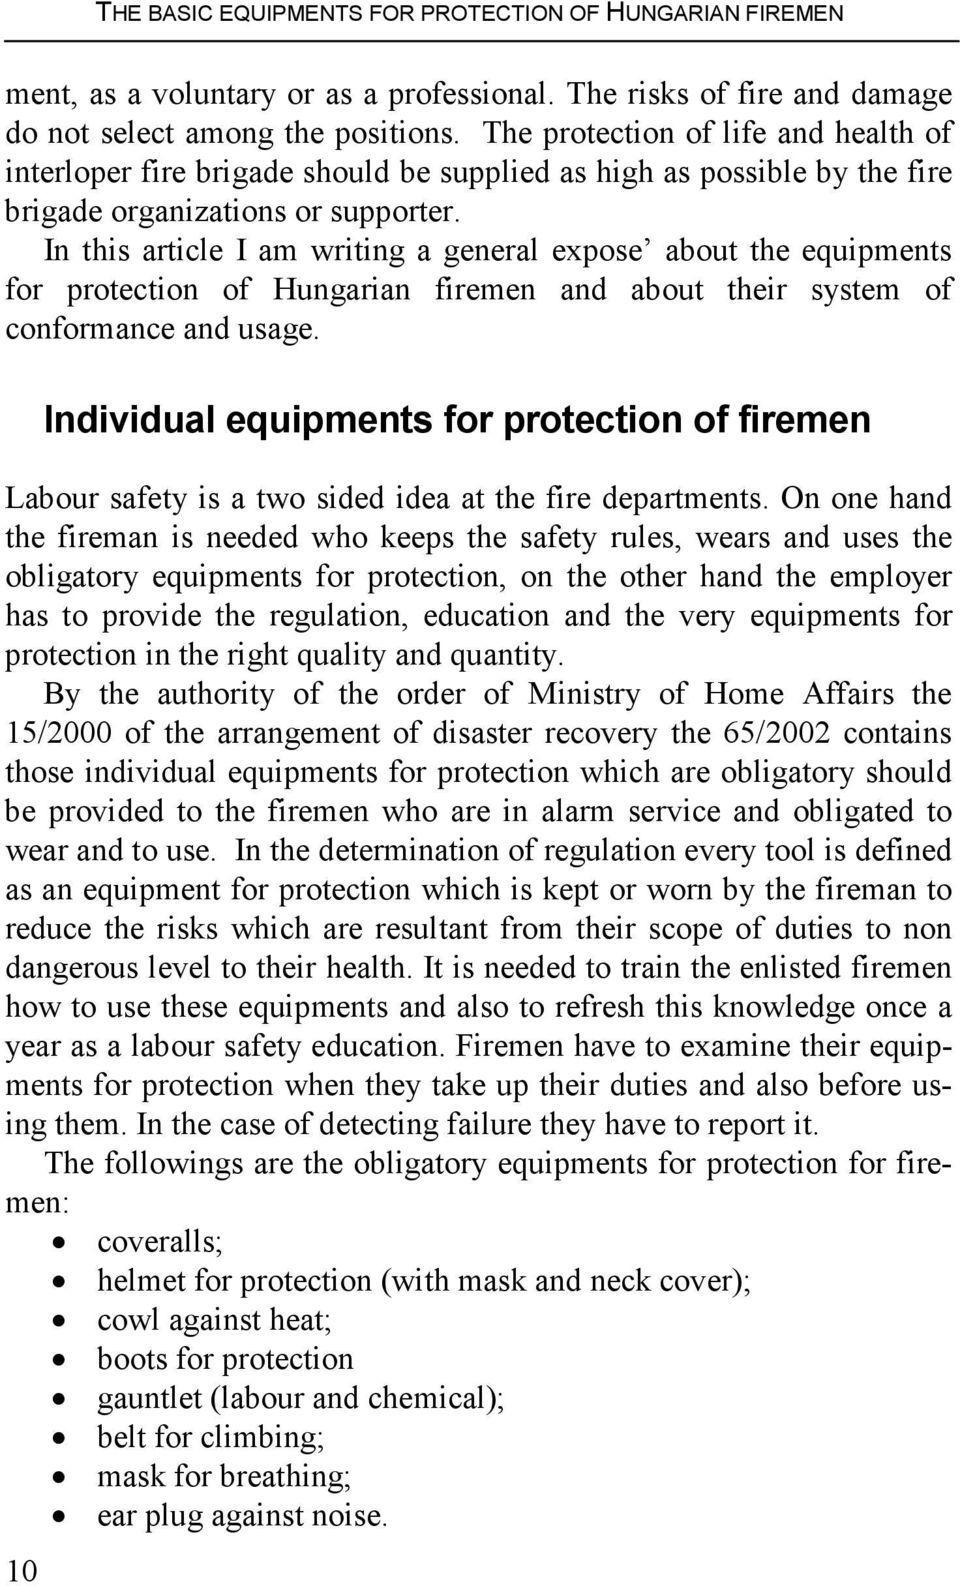 In this article I am writing a general expose about the equipments for protection of Hungarian firemen and about their system of conformance and usage.